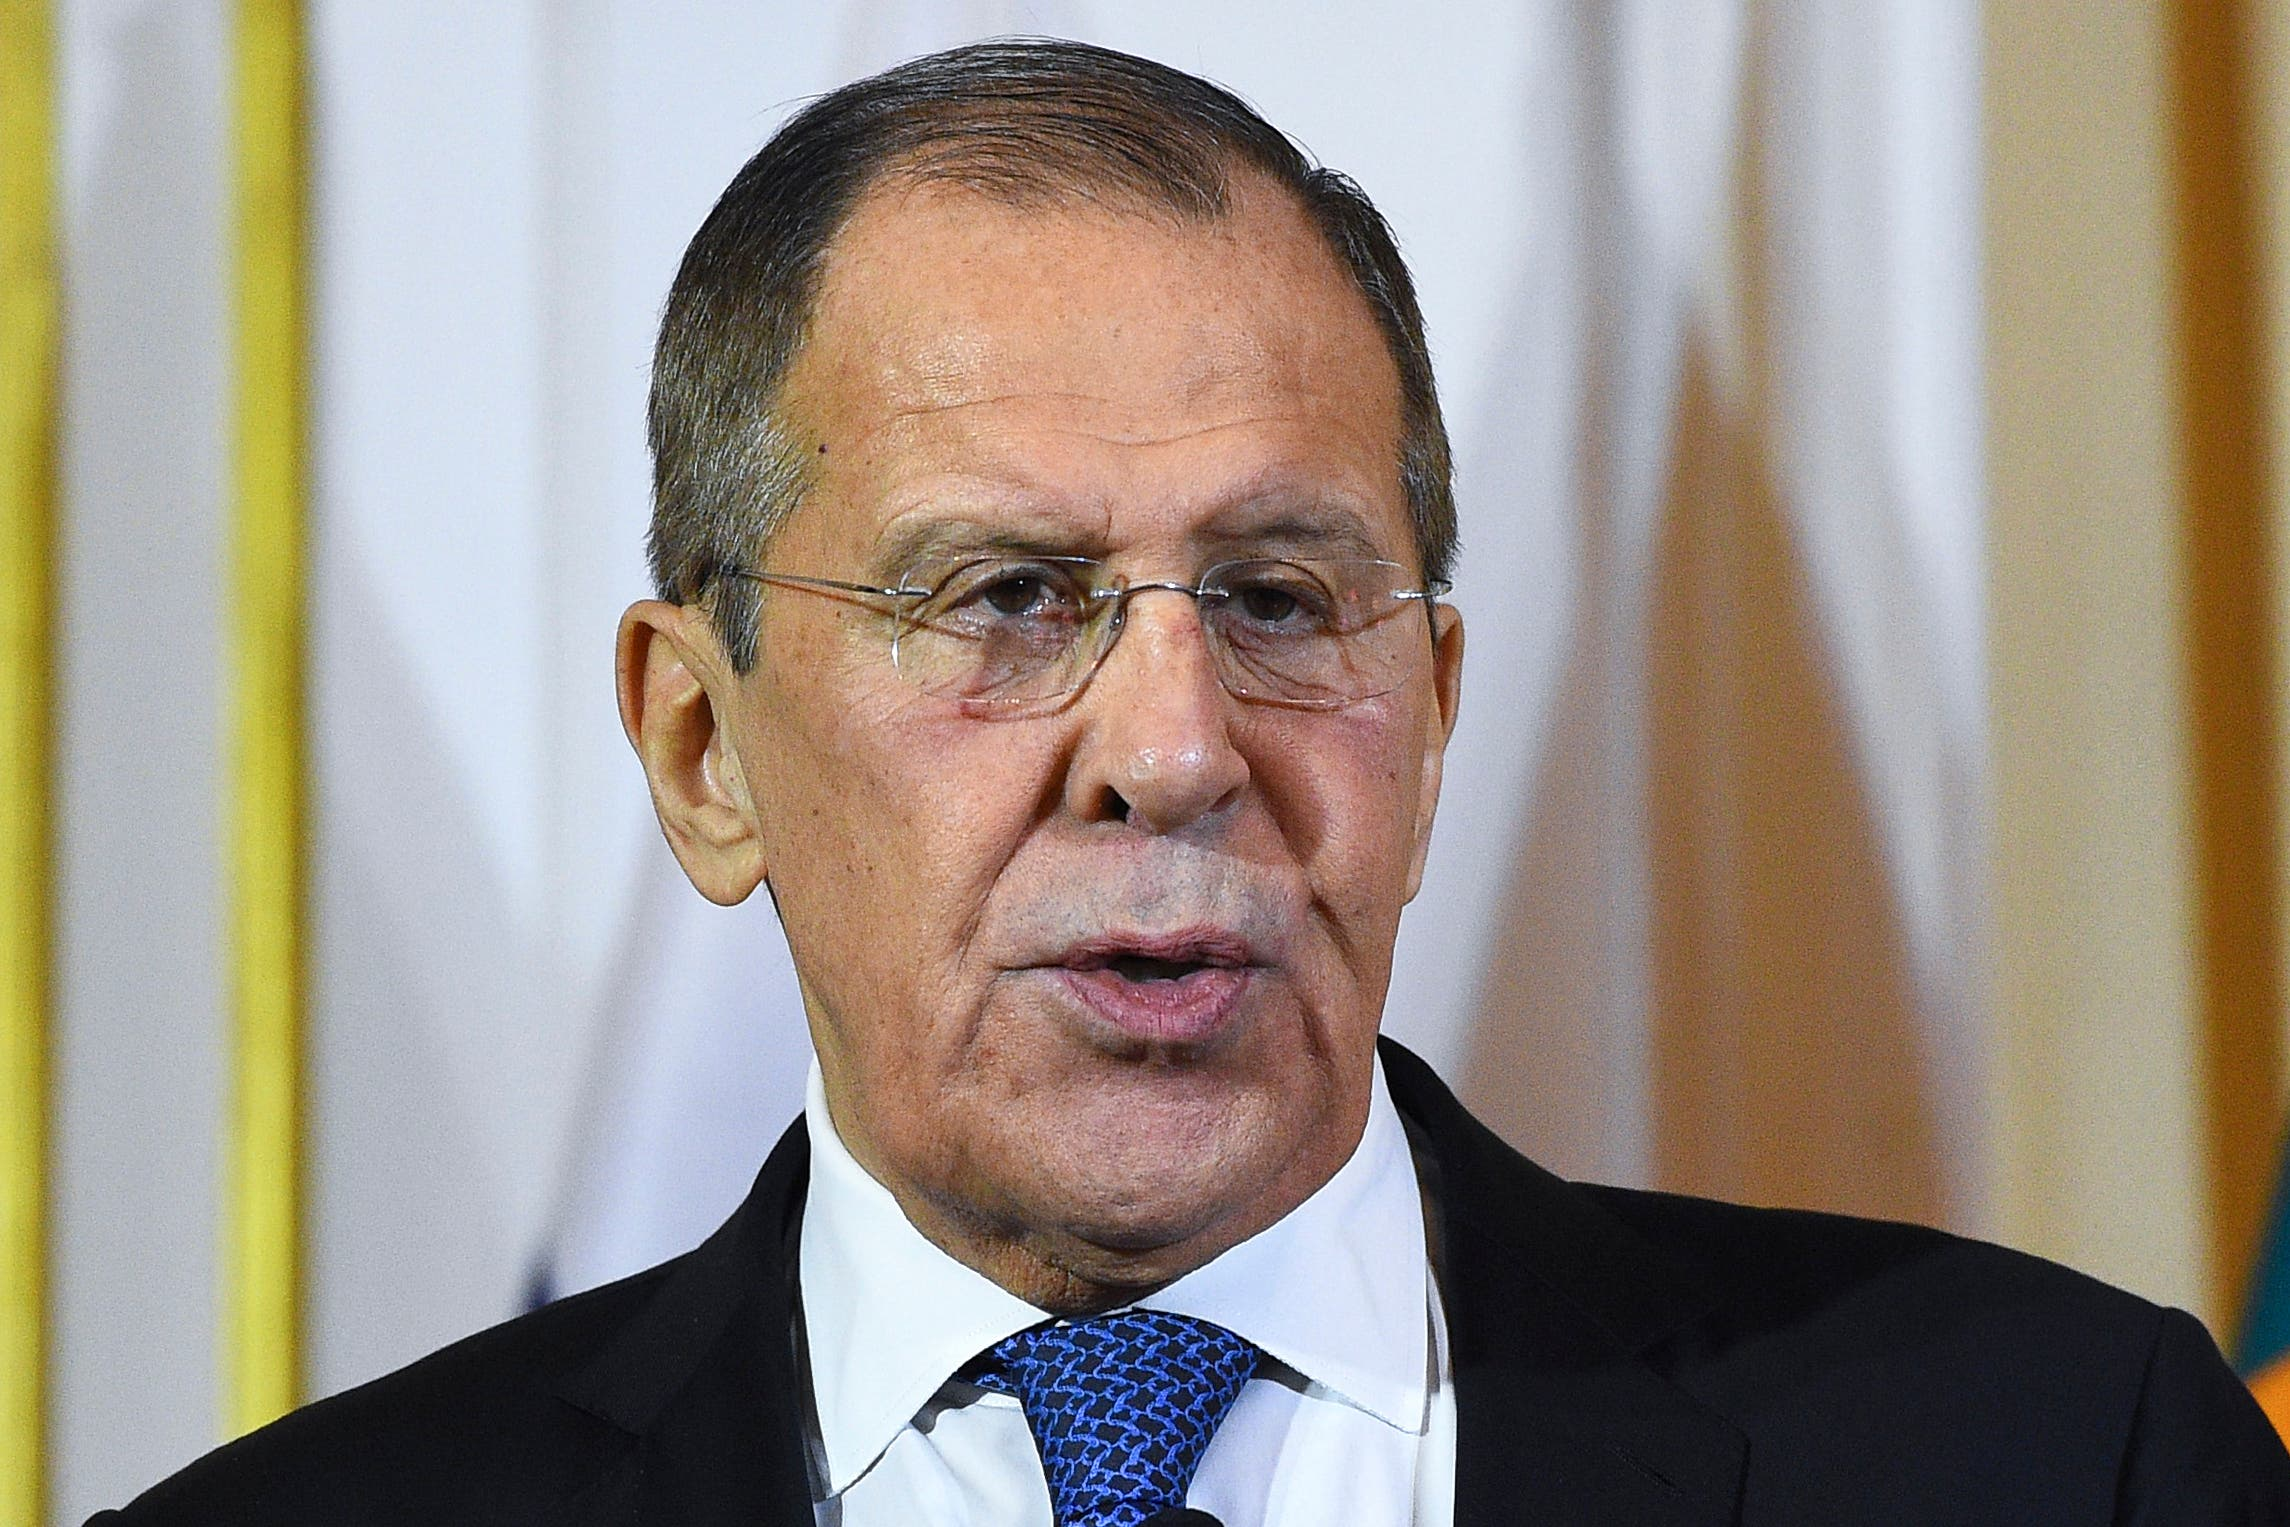 Russian Foreign Minister Sergey Lavrov at a press conference in Colombo on January 14, 2020. (AFP)